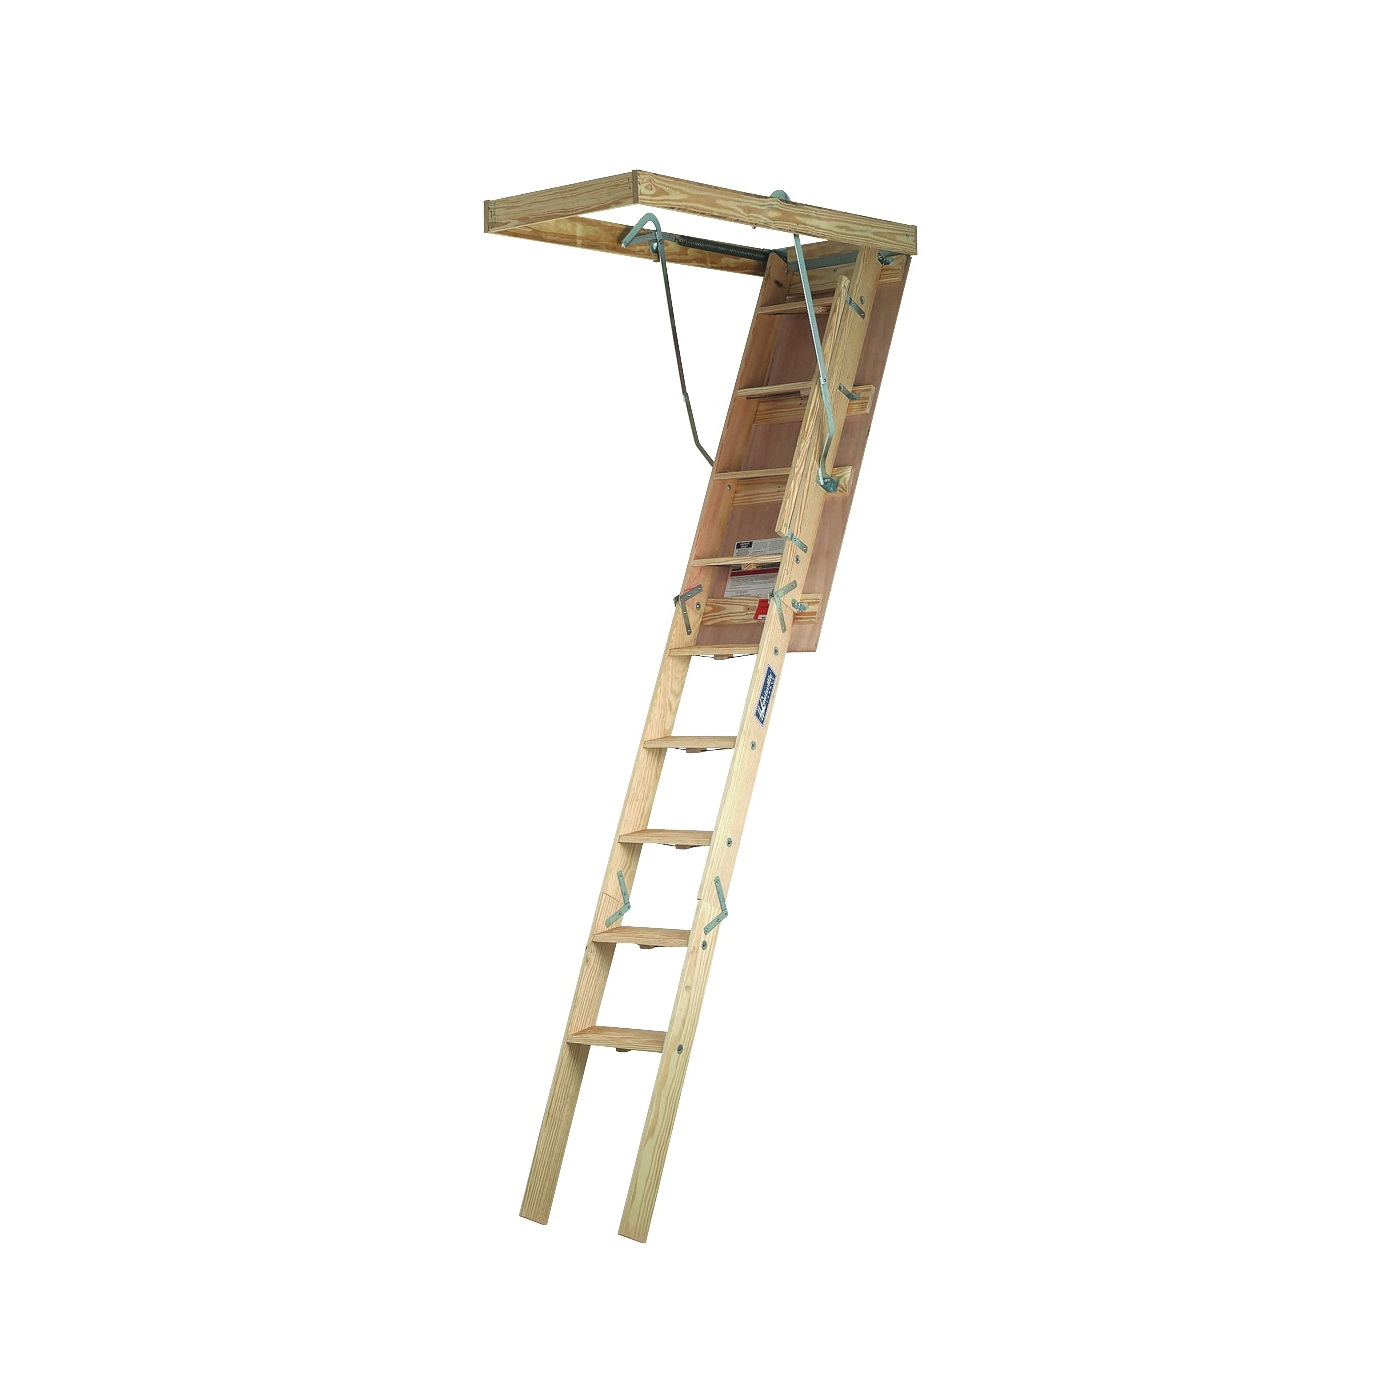 Picture of Louisville Champion Series CL224P Attic Ladder, 8 ft 9 in to 10 ft H Ceiling, 22-1/2 x 54 in Ceiling Opening, 300 lb